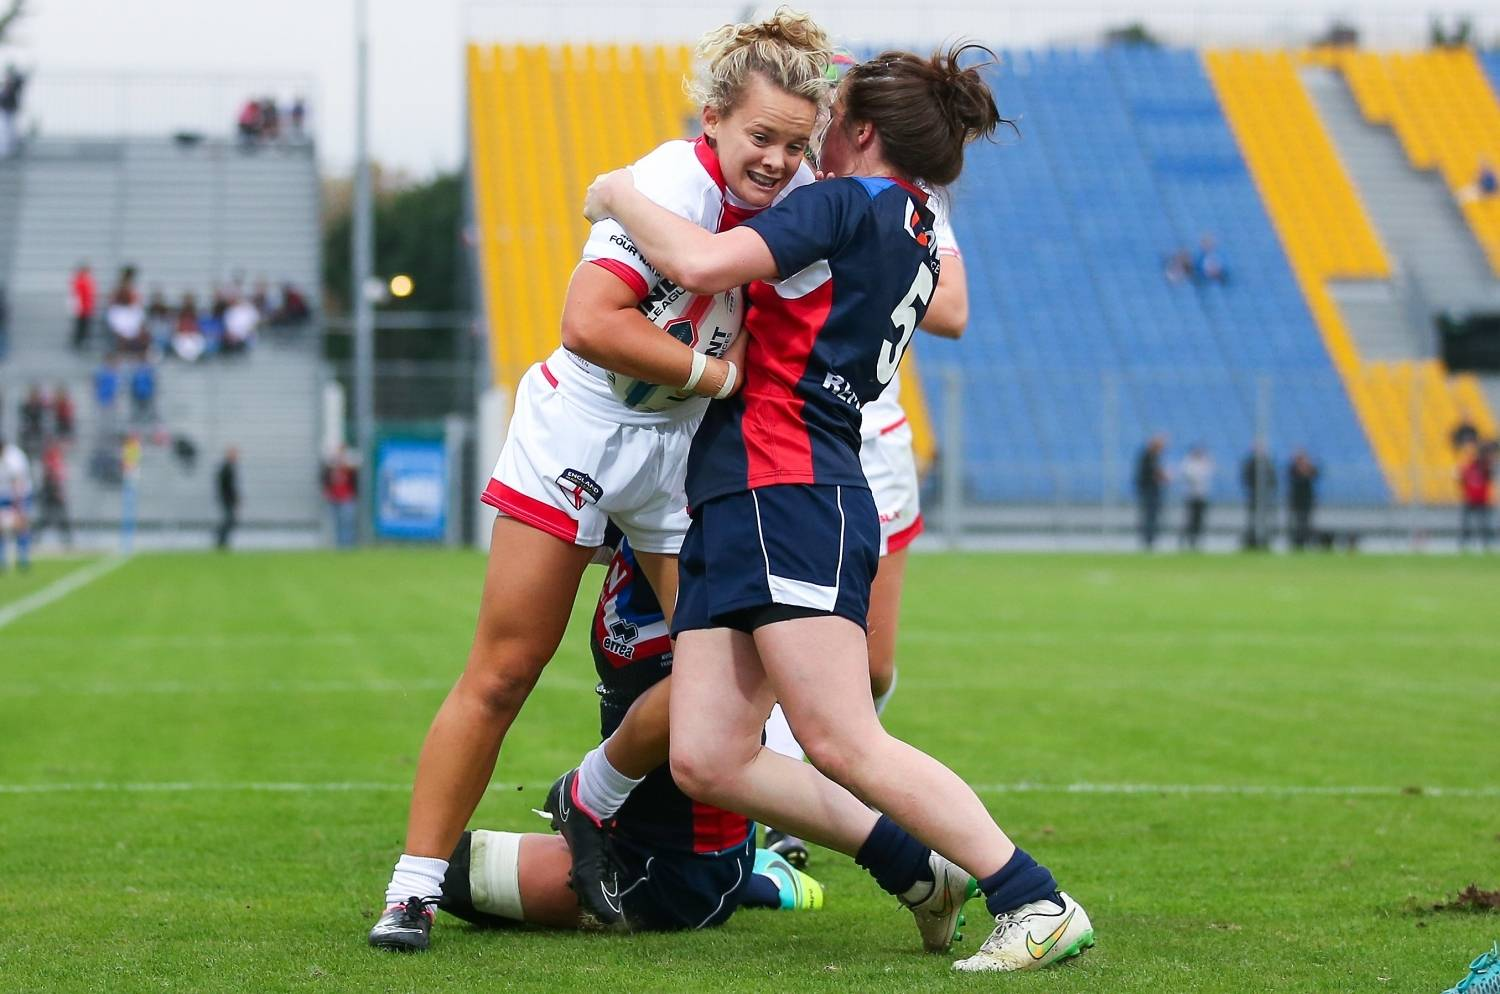 Report | France Women 8-14 England Women